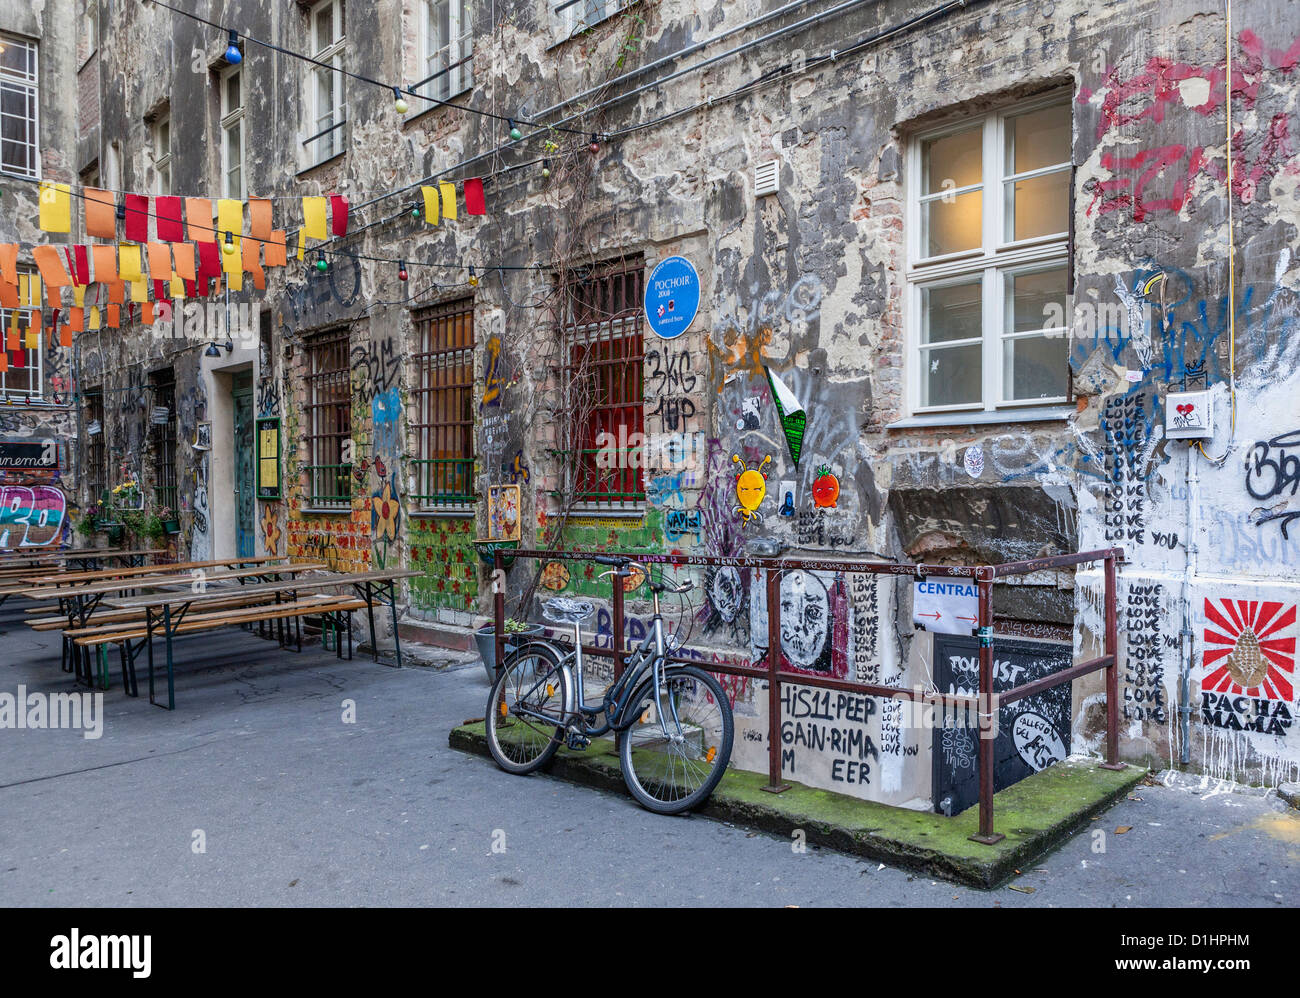 Courtyard Berlin Mitte Graffiti And Street Art Decorates The Inner Courtyard Of